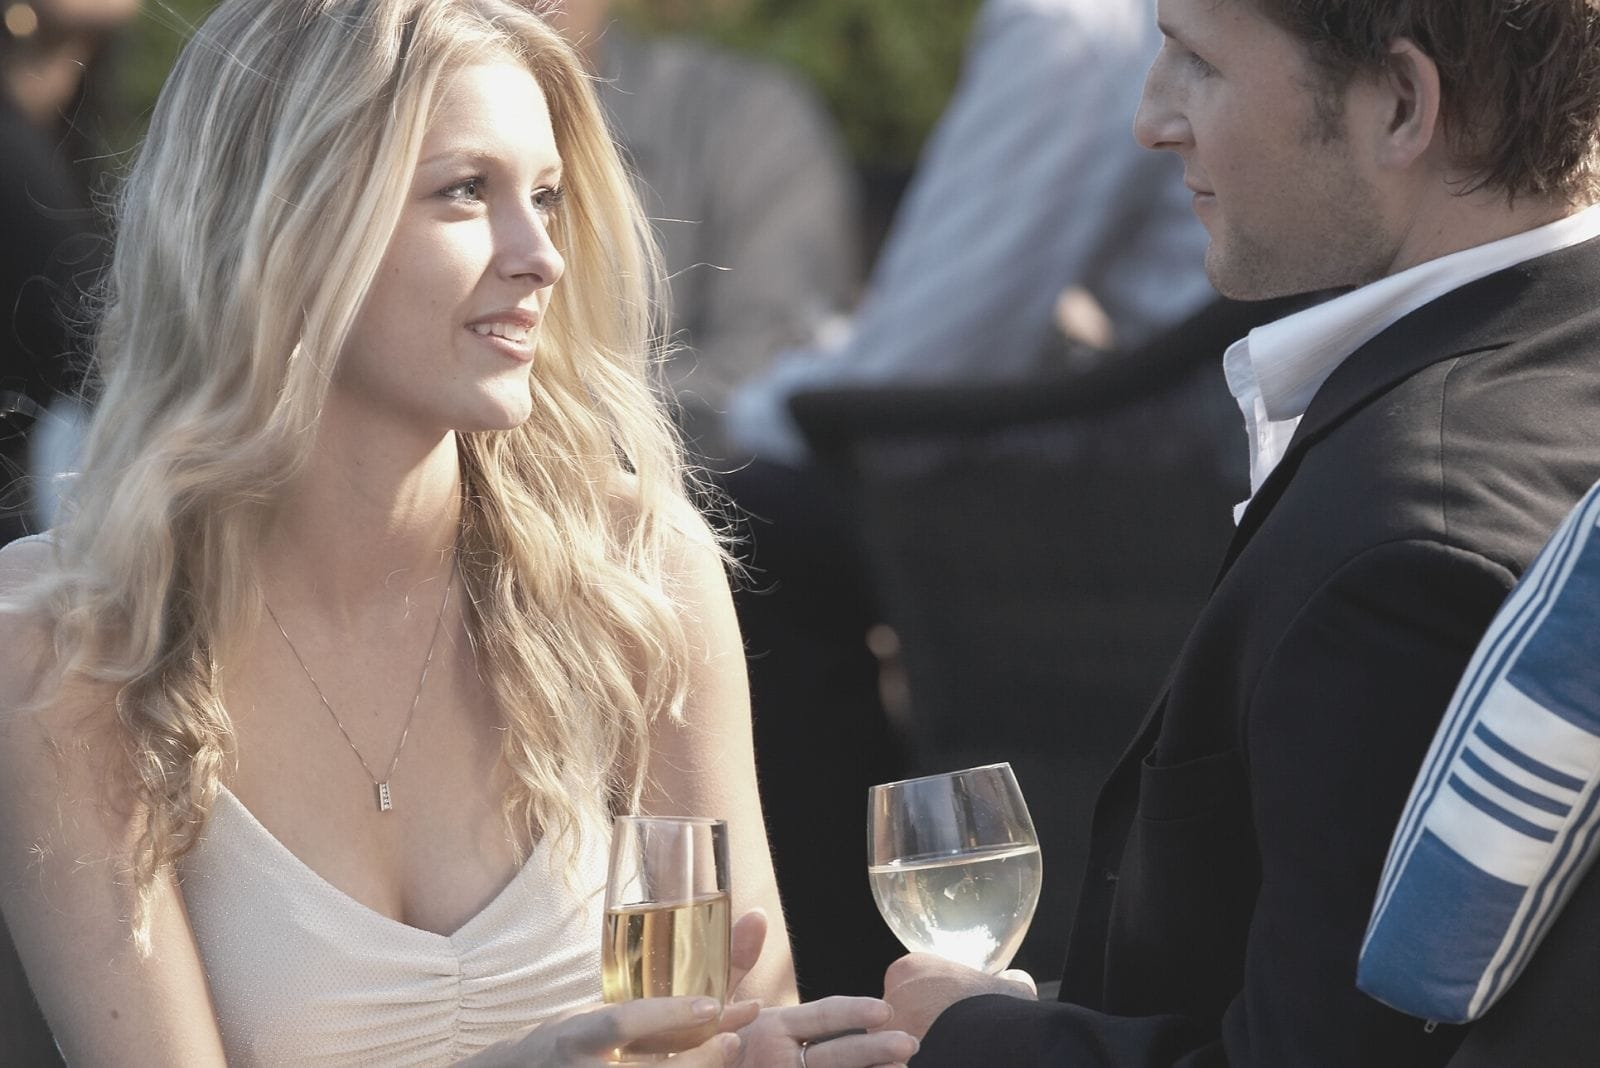 couple attending a party wearing formal dress and drinking wine